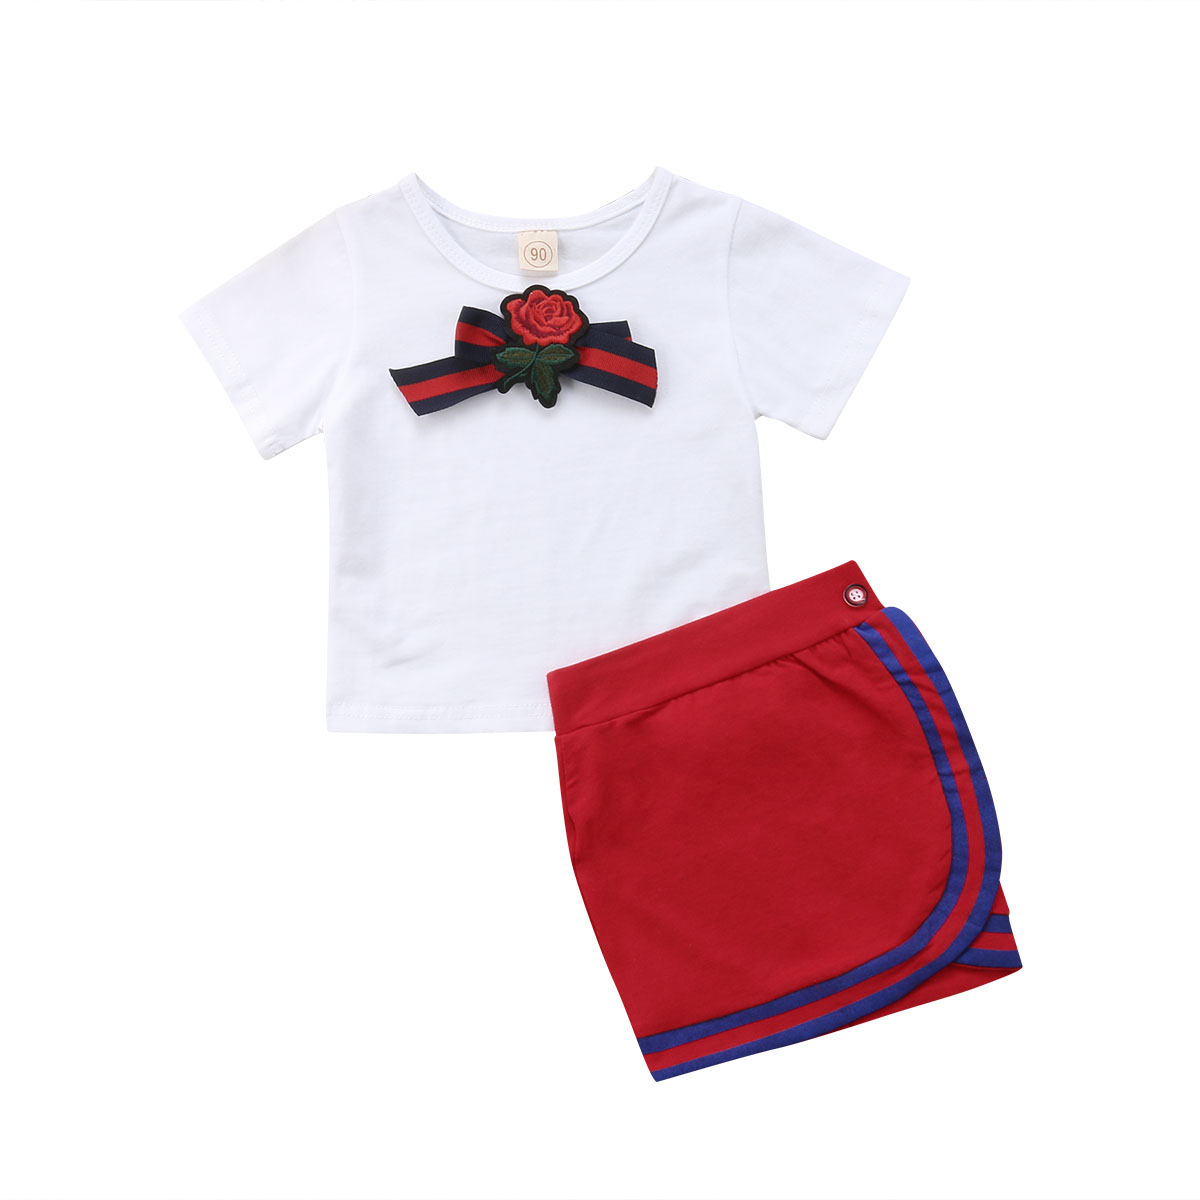 Newborn Kids Baby Girls Clothes Sets Bow Flower Tie Tops Short Sleeve T-shirt Skirts 2pcs Cotton Outfits Set Girl 1-5T 2017 spring boutique baby girl pullovers puff skirts girls sets embroidery long sleeve tops korean tutu skirts suits 2pcs set